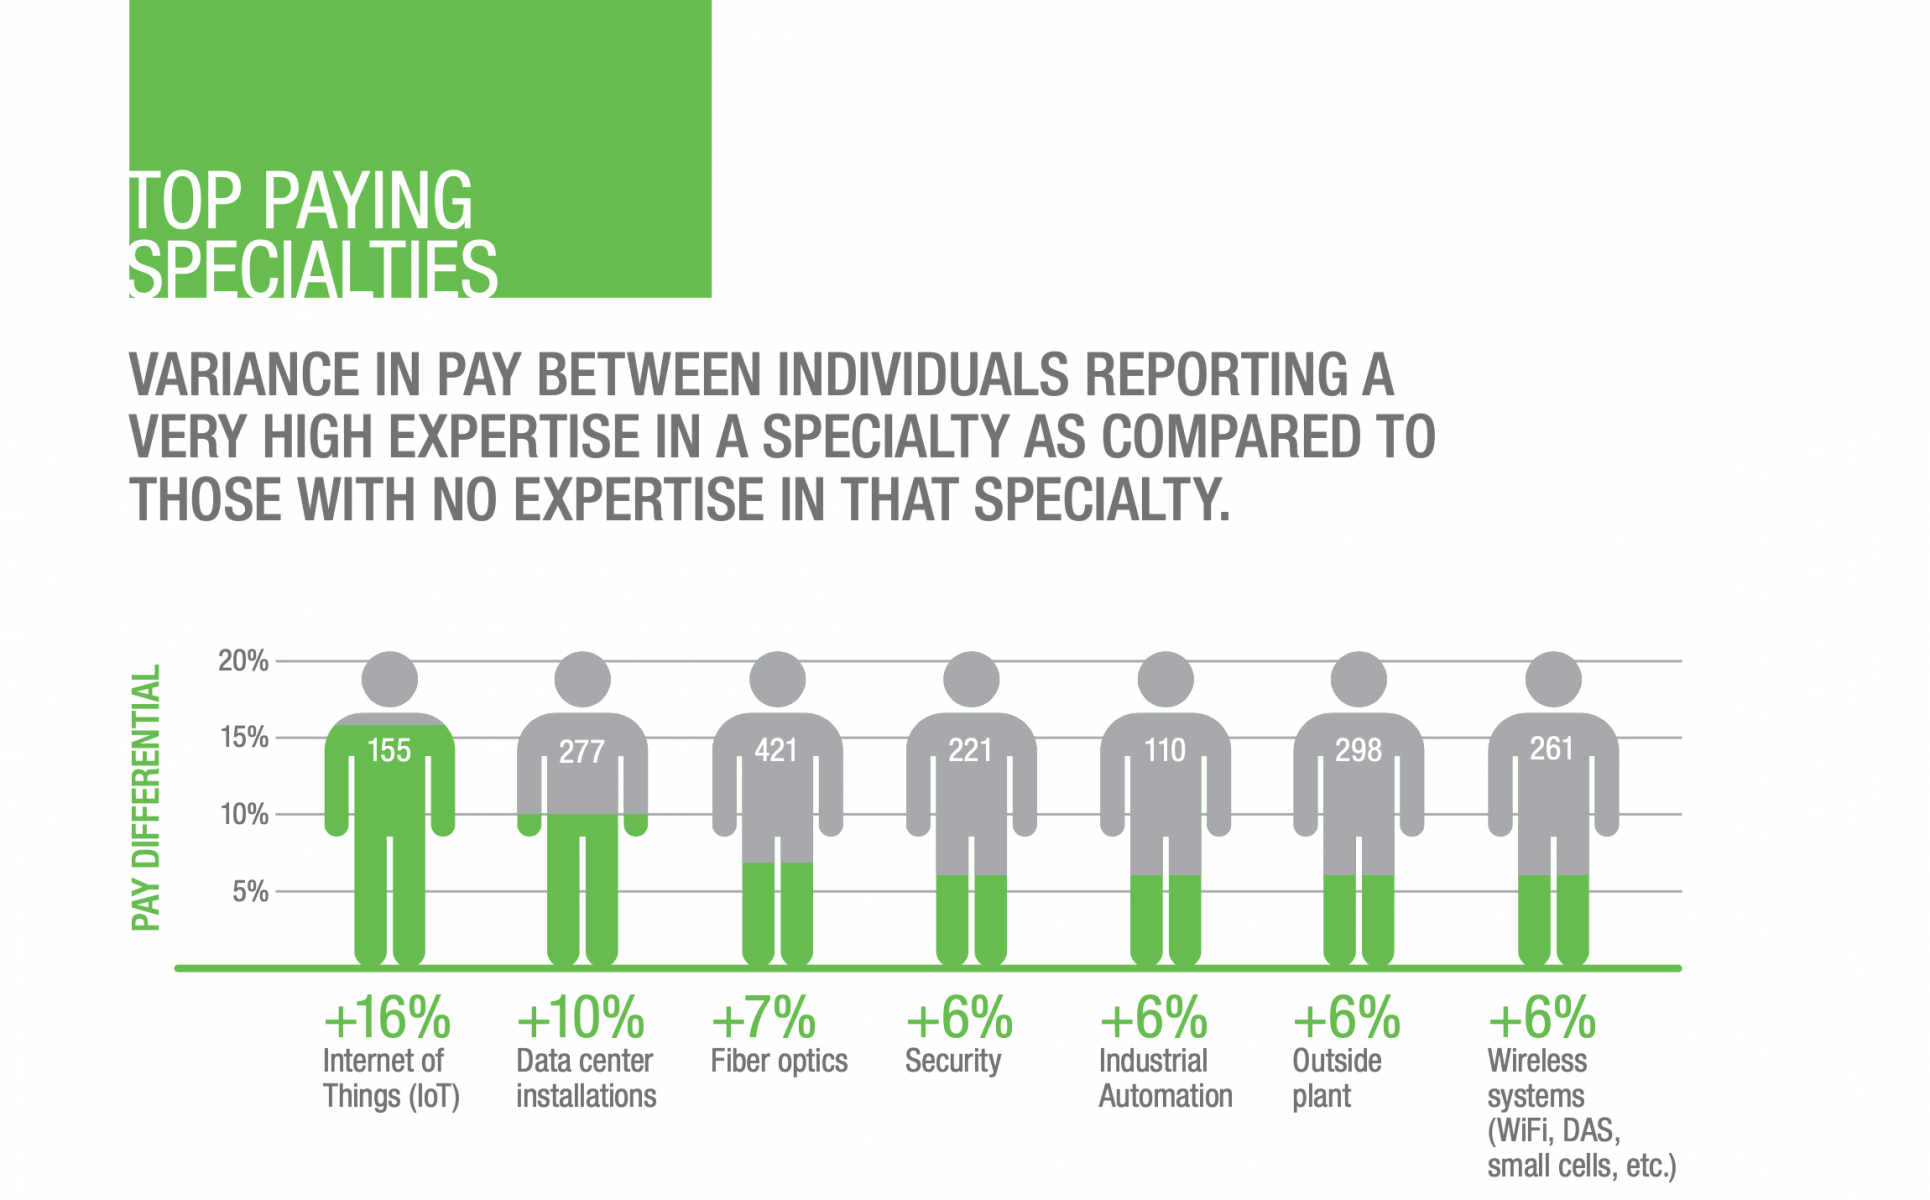 Pay by Job Specialty Where Those in Internet of Things Get the Biggest Increase in Pay